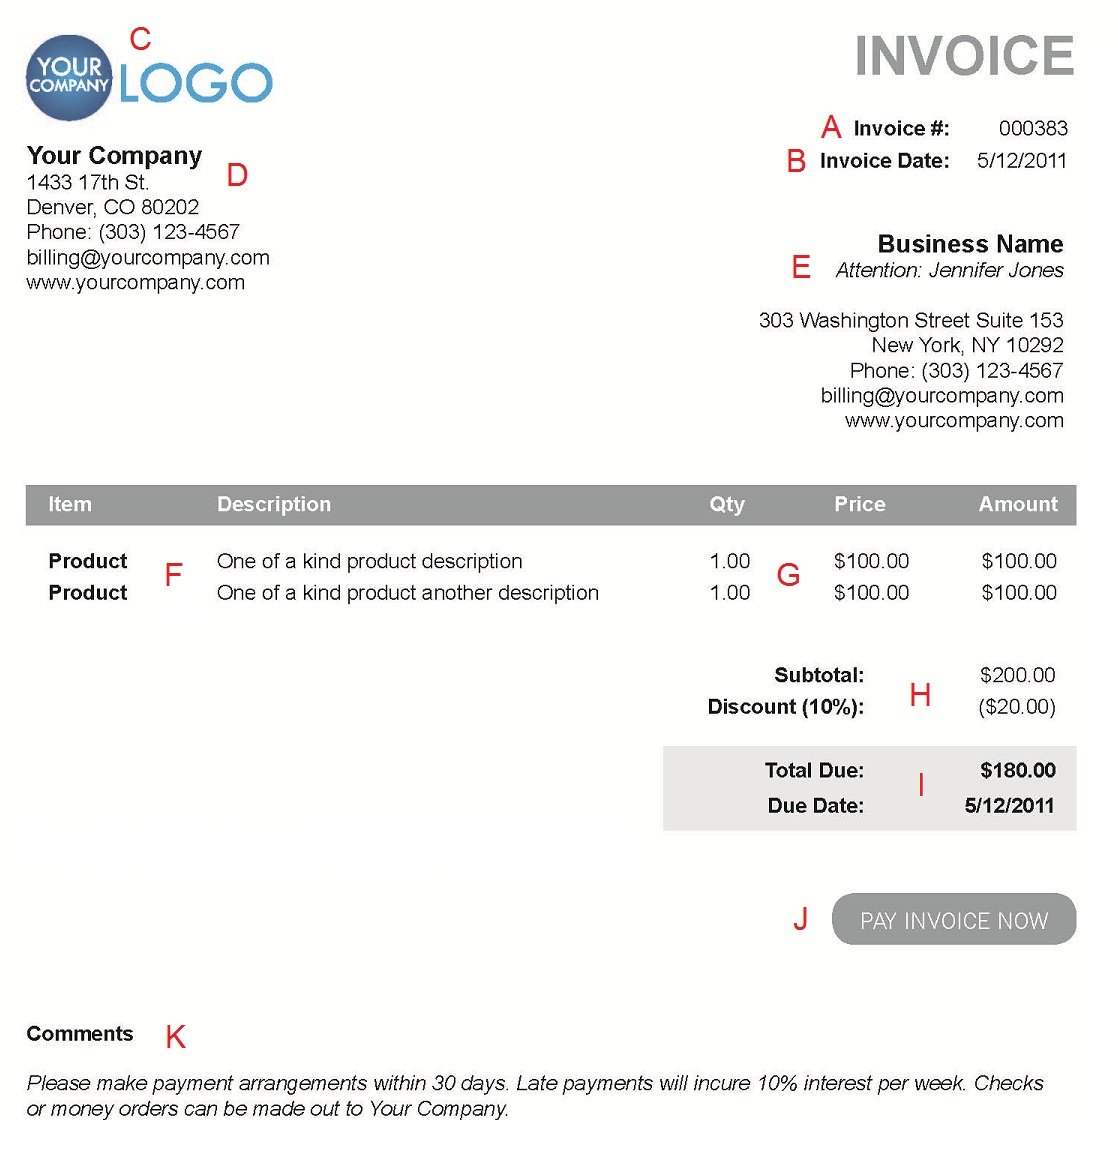 Hius  Gorgeous The  Different Sections Of An Electronic Payment Invoice With Engaging A  With Appealing Payment Terms Due On Receipt Also Nonreceipt Of Pci Validation In Addition App To Store Receipts And Food Receipt Template As Well As Return No Receipt Additionally Receipt Sample Form From Paysimplecom With Hius  Engaging The  Different Sections Of An Electronic Payment Invoice With Appealing A  And Gorgeous Payment Terms Due On Receipt Also Nonreceipt Of Pci Validation In Addition App To Store Receipts From Paysimplecom